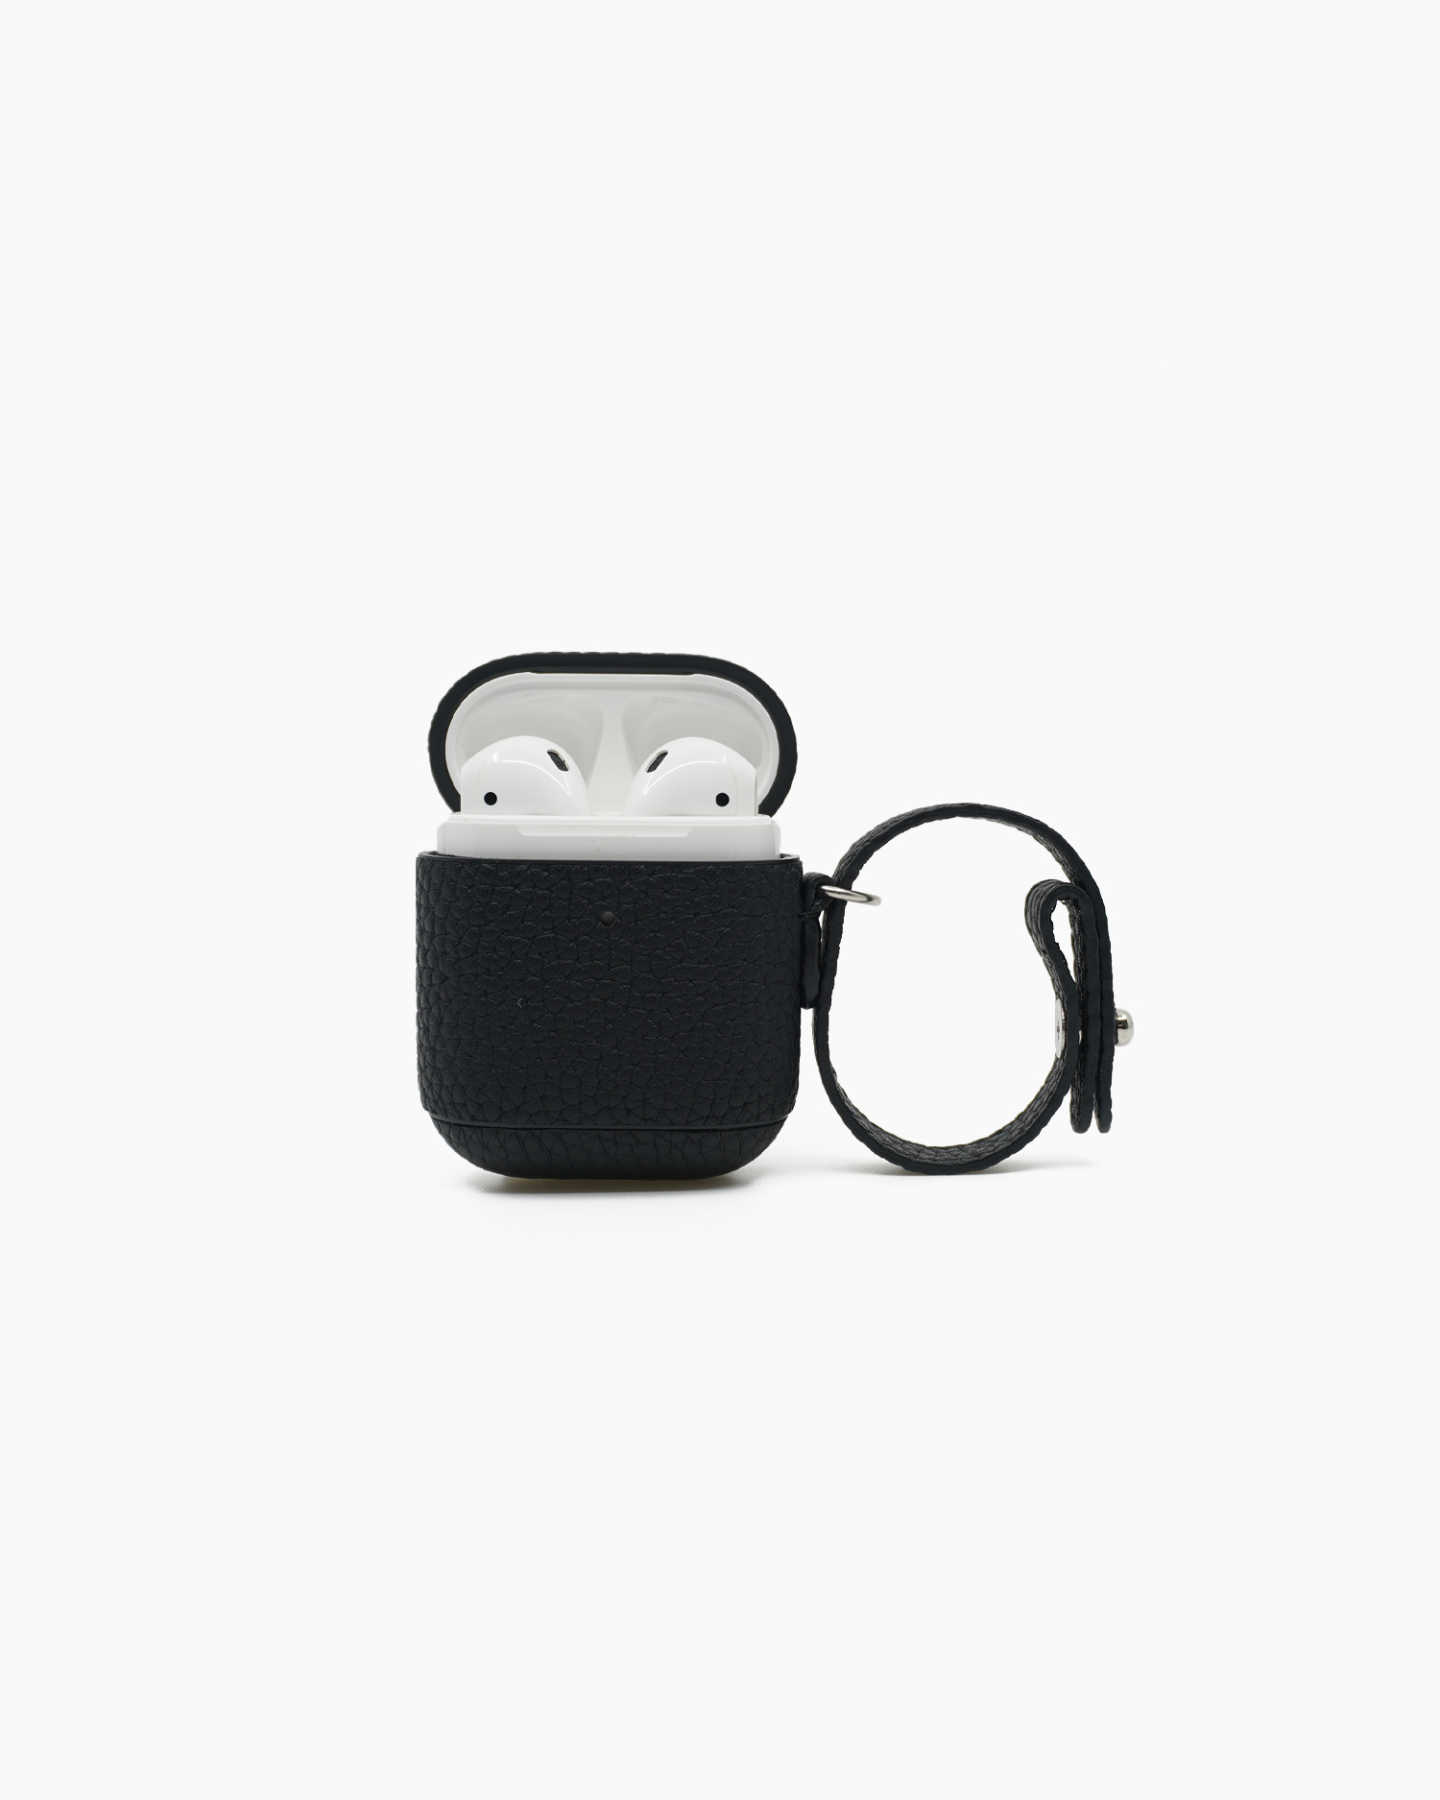 Premium Pebbled Leather AirPod Case - Black - 1